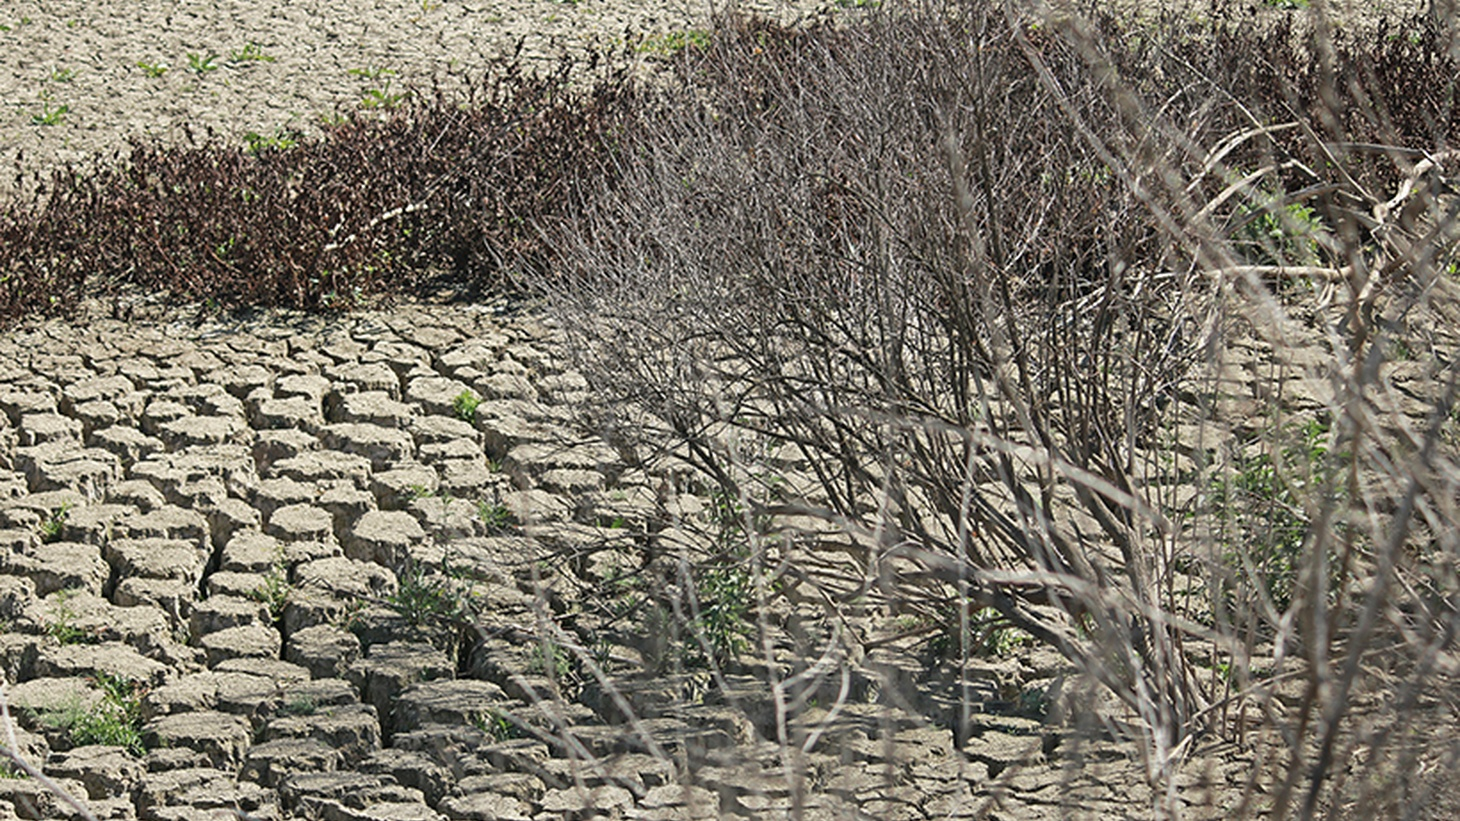 Farmers in the Central Valley are pumping so much underground water that roads and canals are cracking and bridges may be in danger. Beneath the surface, natural reservoirs are collapsing, and there'll be no way to restore them, even if the drought should suddenly come to an end.